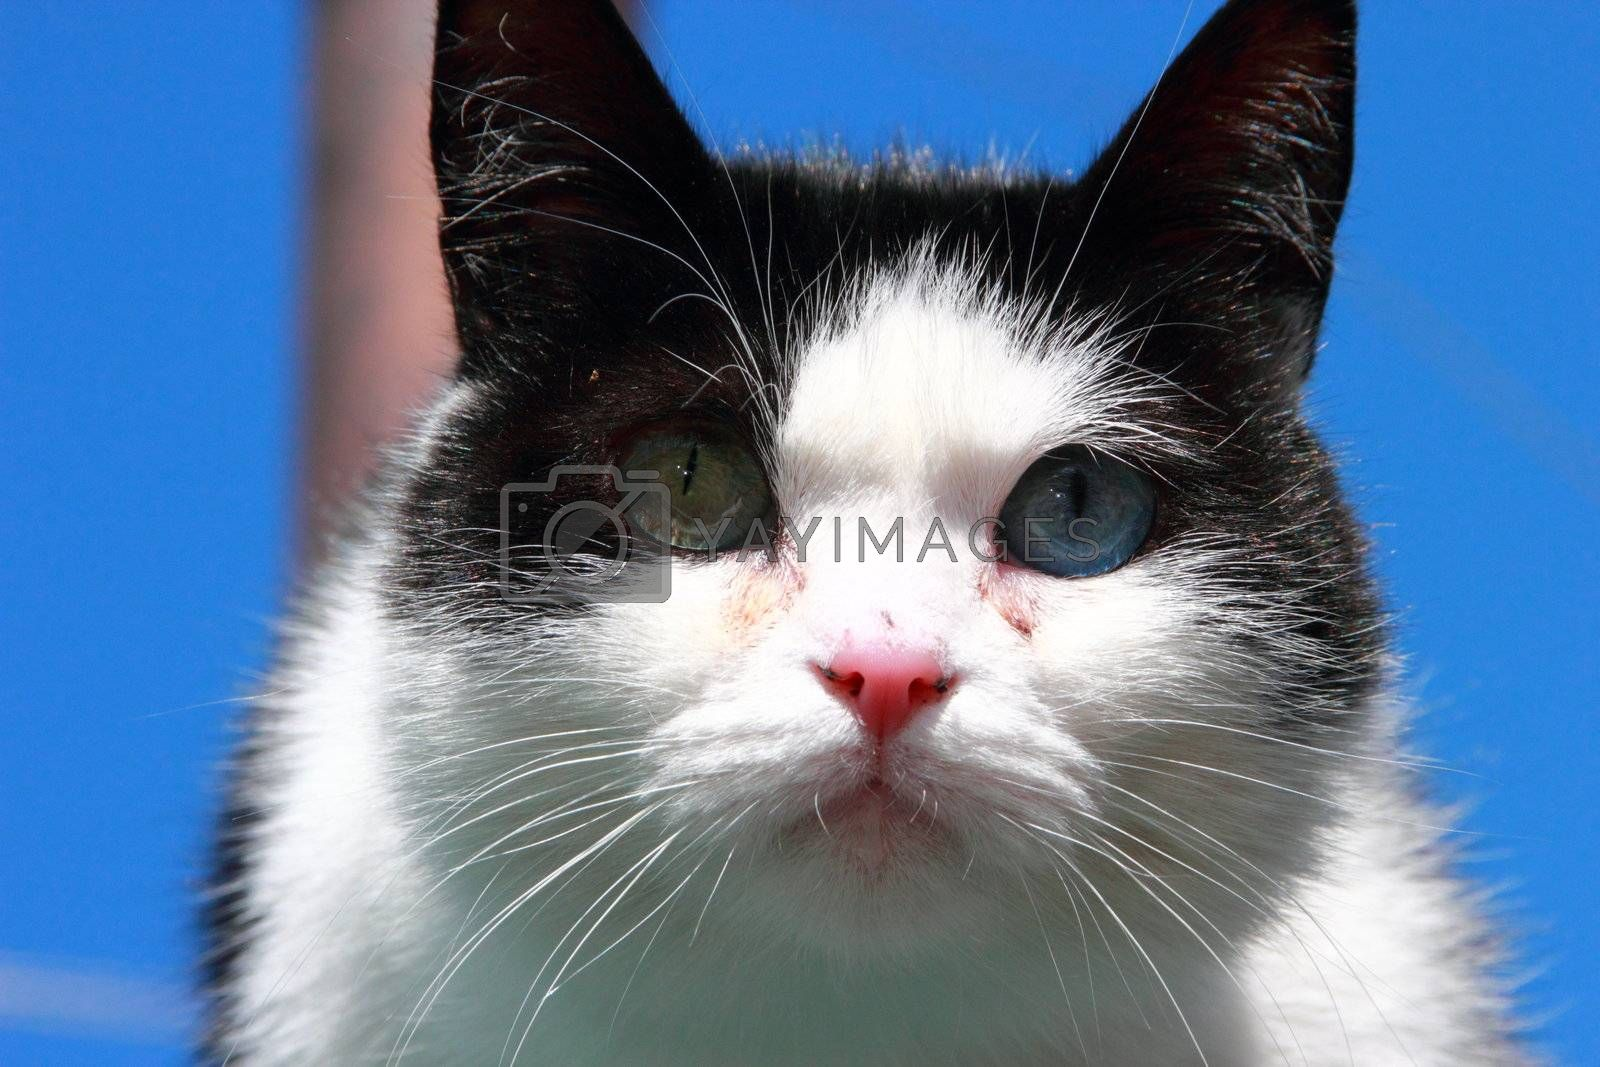 cat with different eyes, black and white